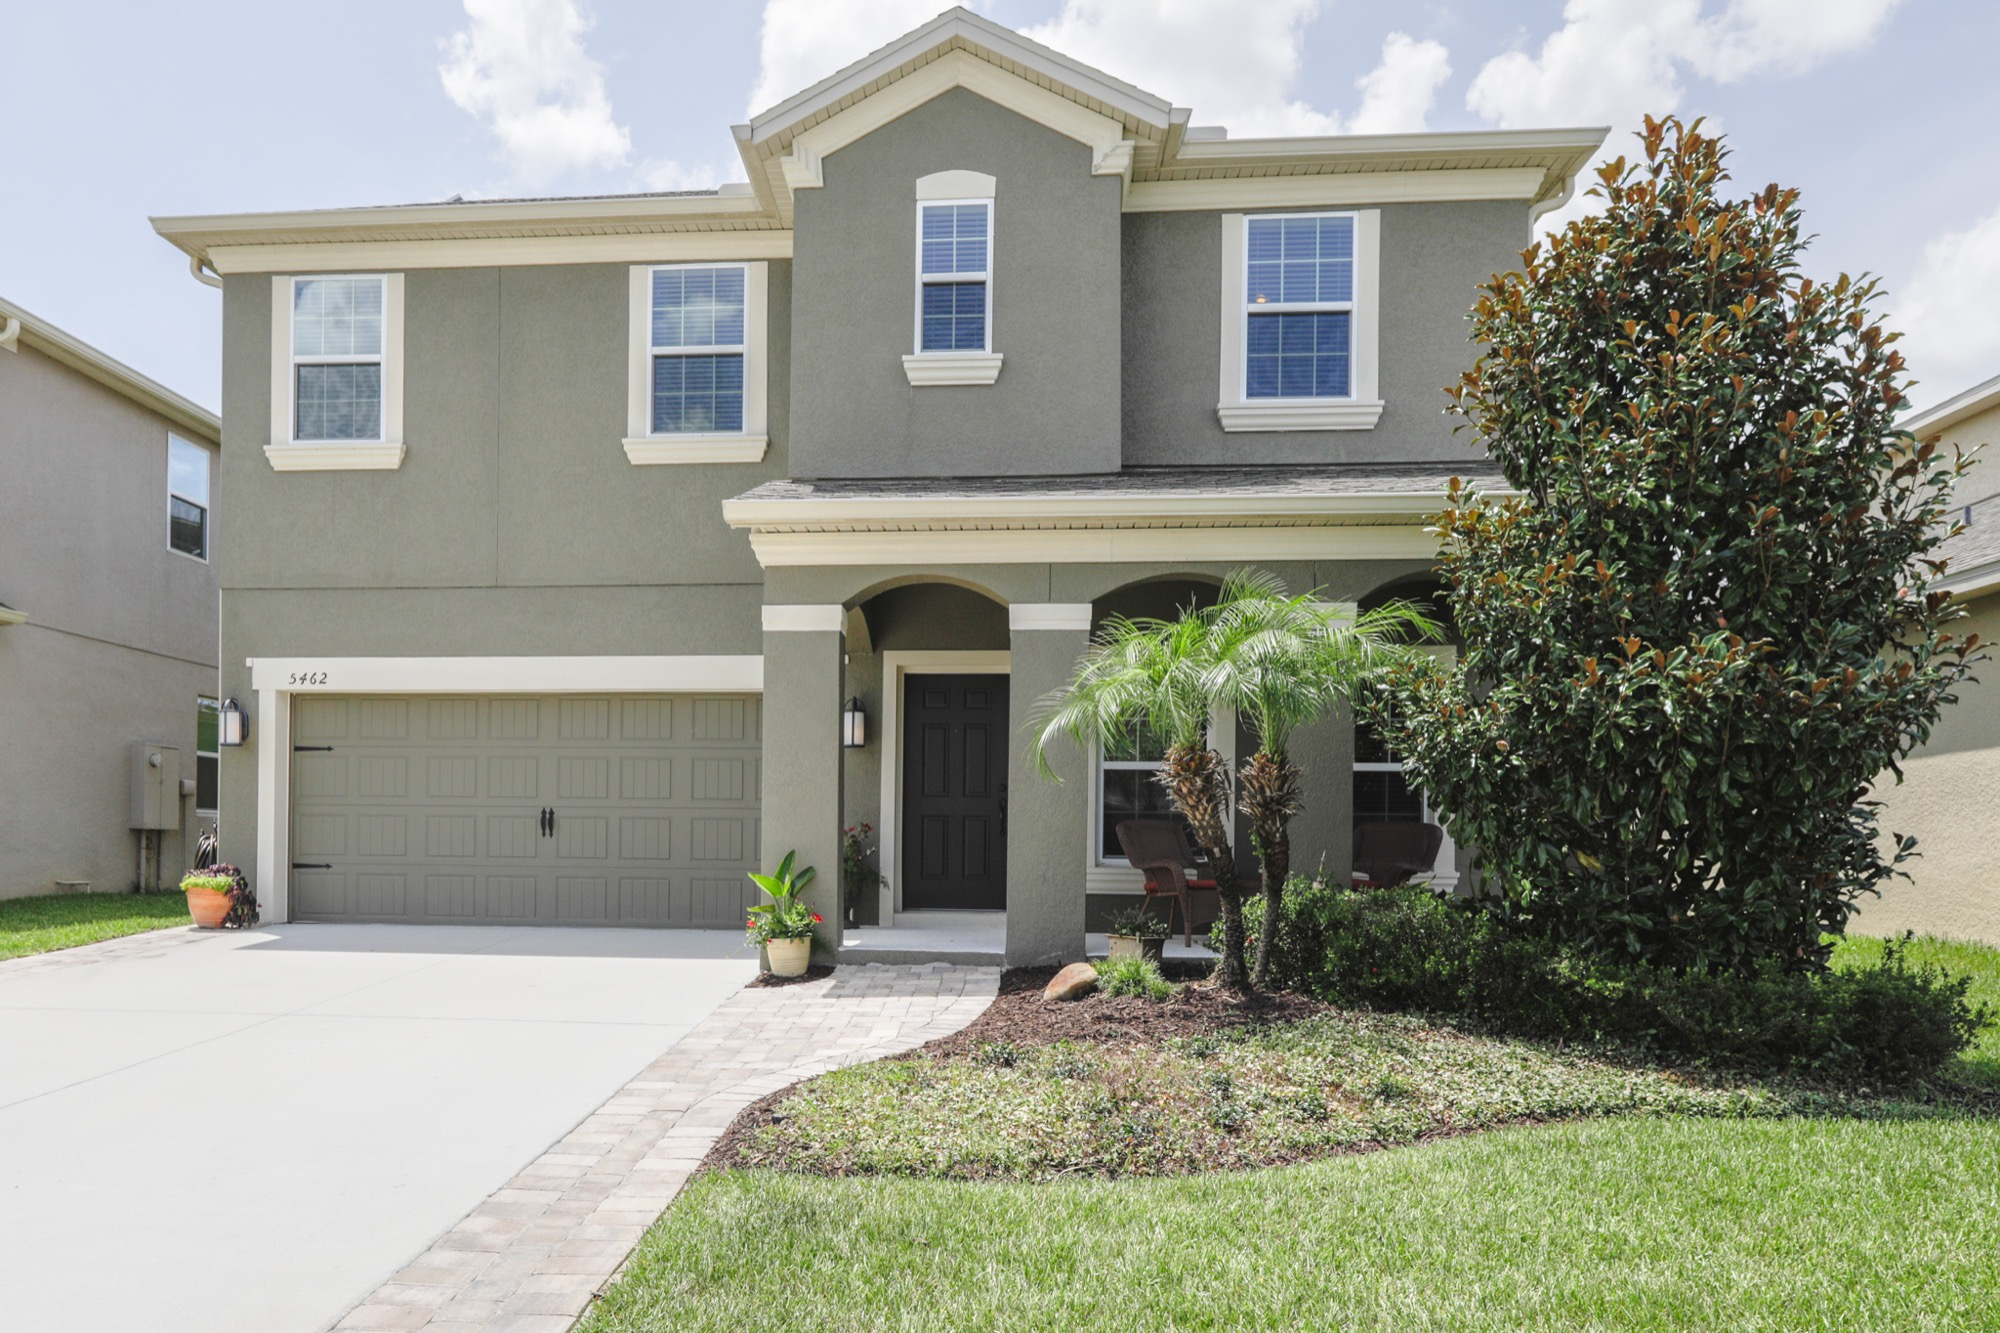 5462 Cozy Oak Cove, Winter Park, FL 32792